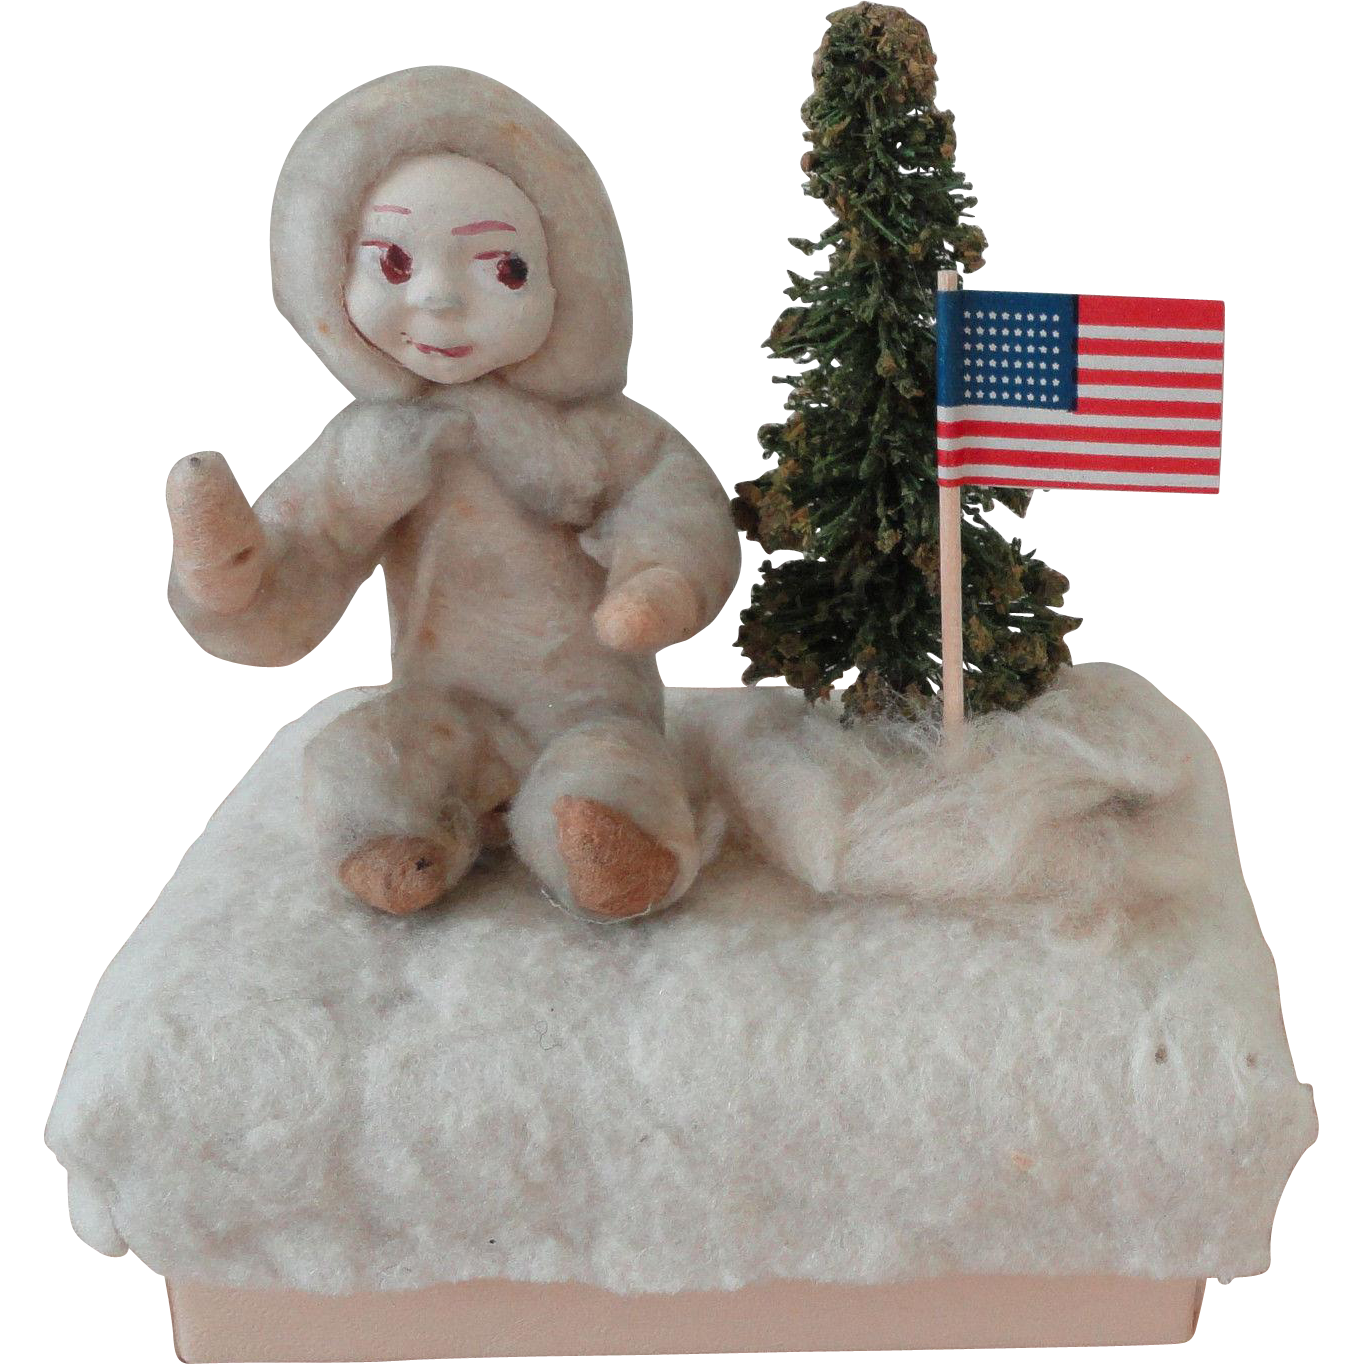 Snowbaby Vintage Christmas Figurine on Candy Container Box